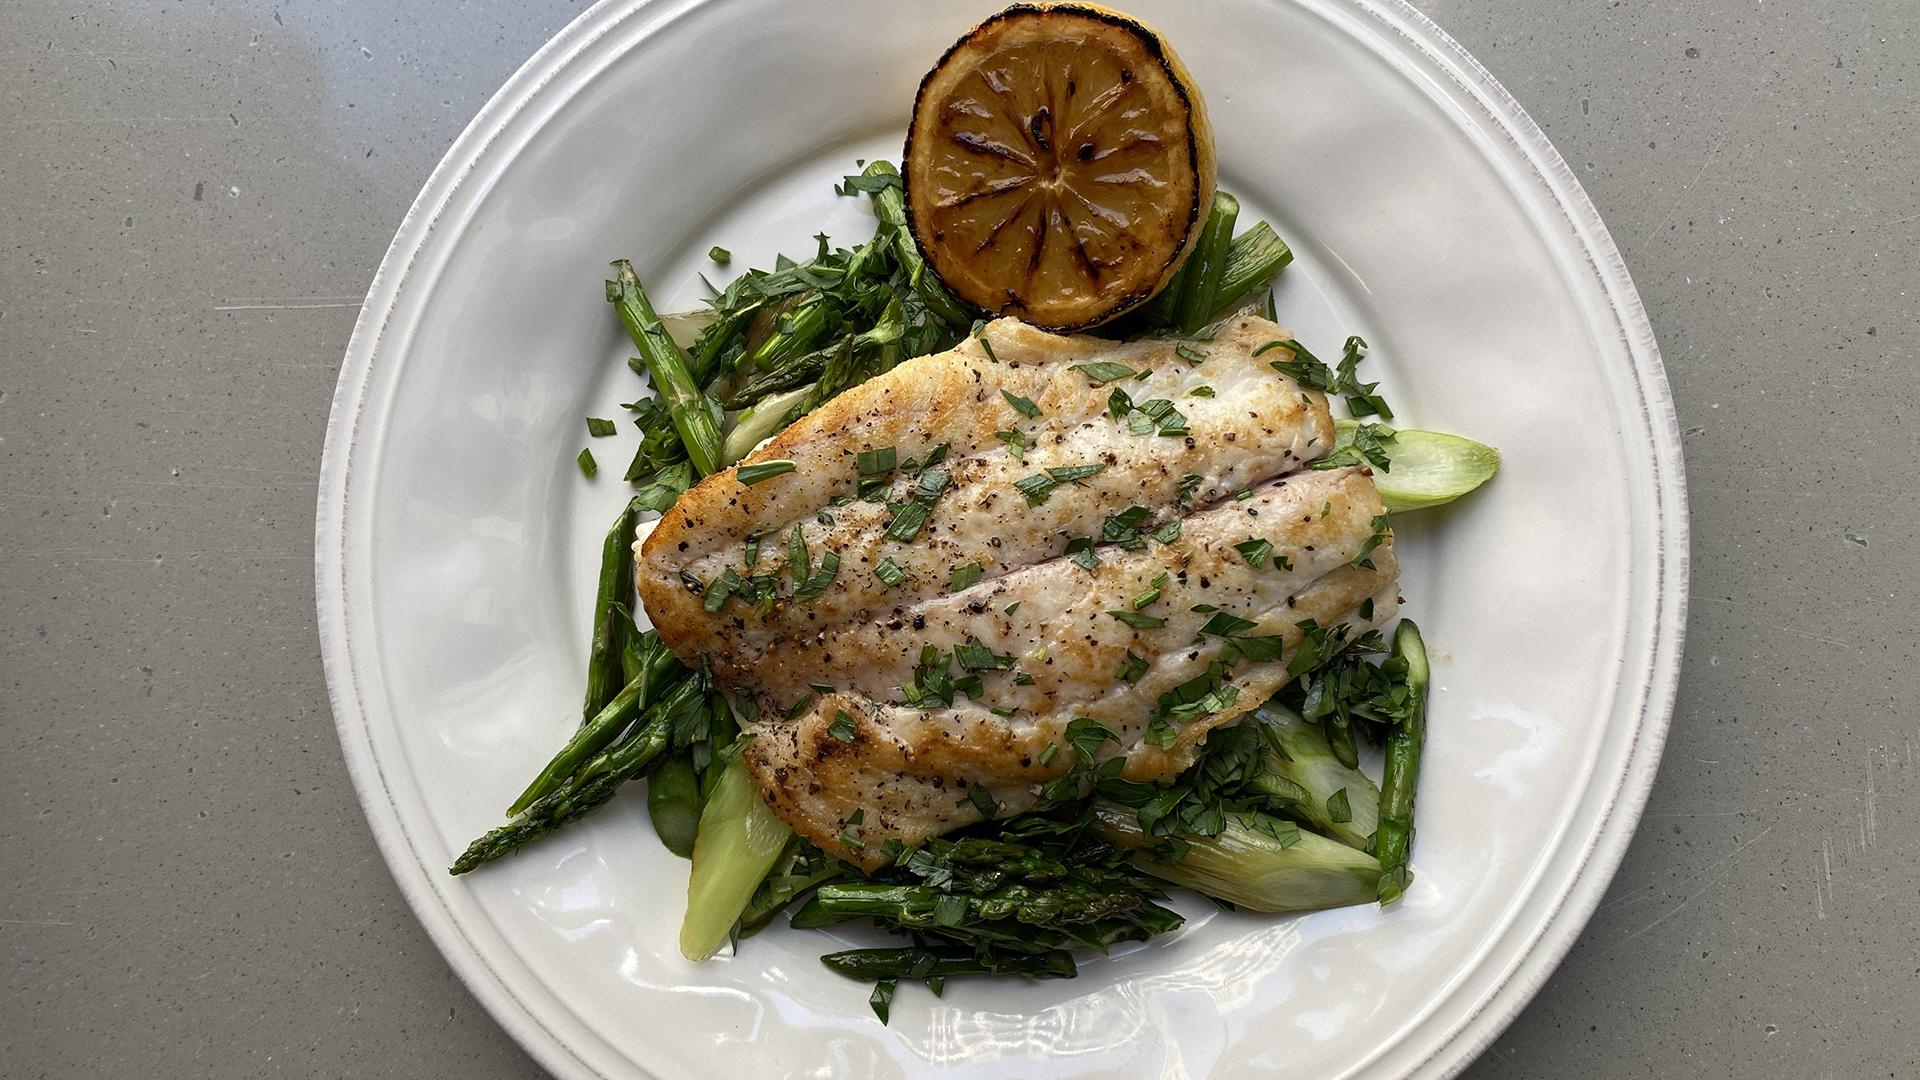 One-Skillet Fish with Asparagus and Green Onions